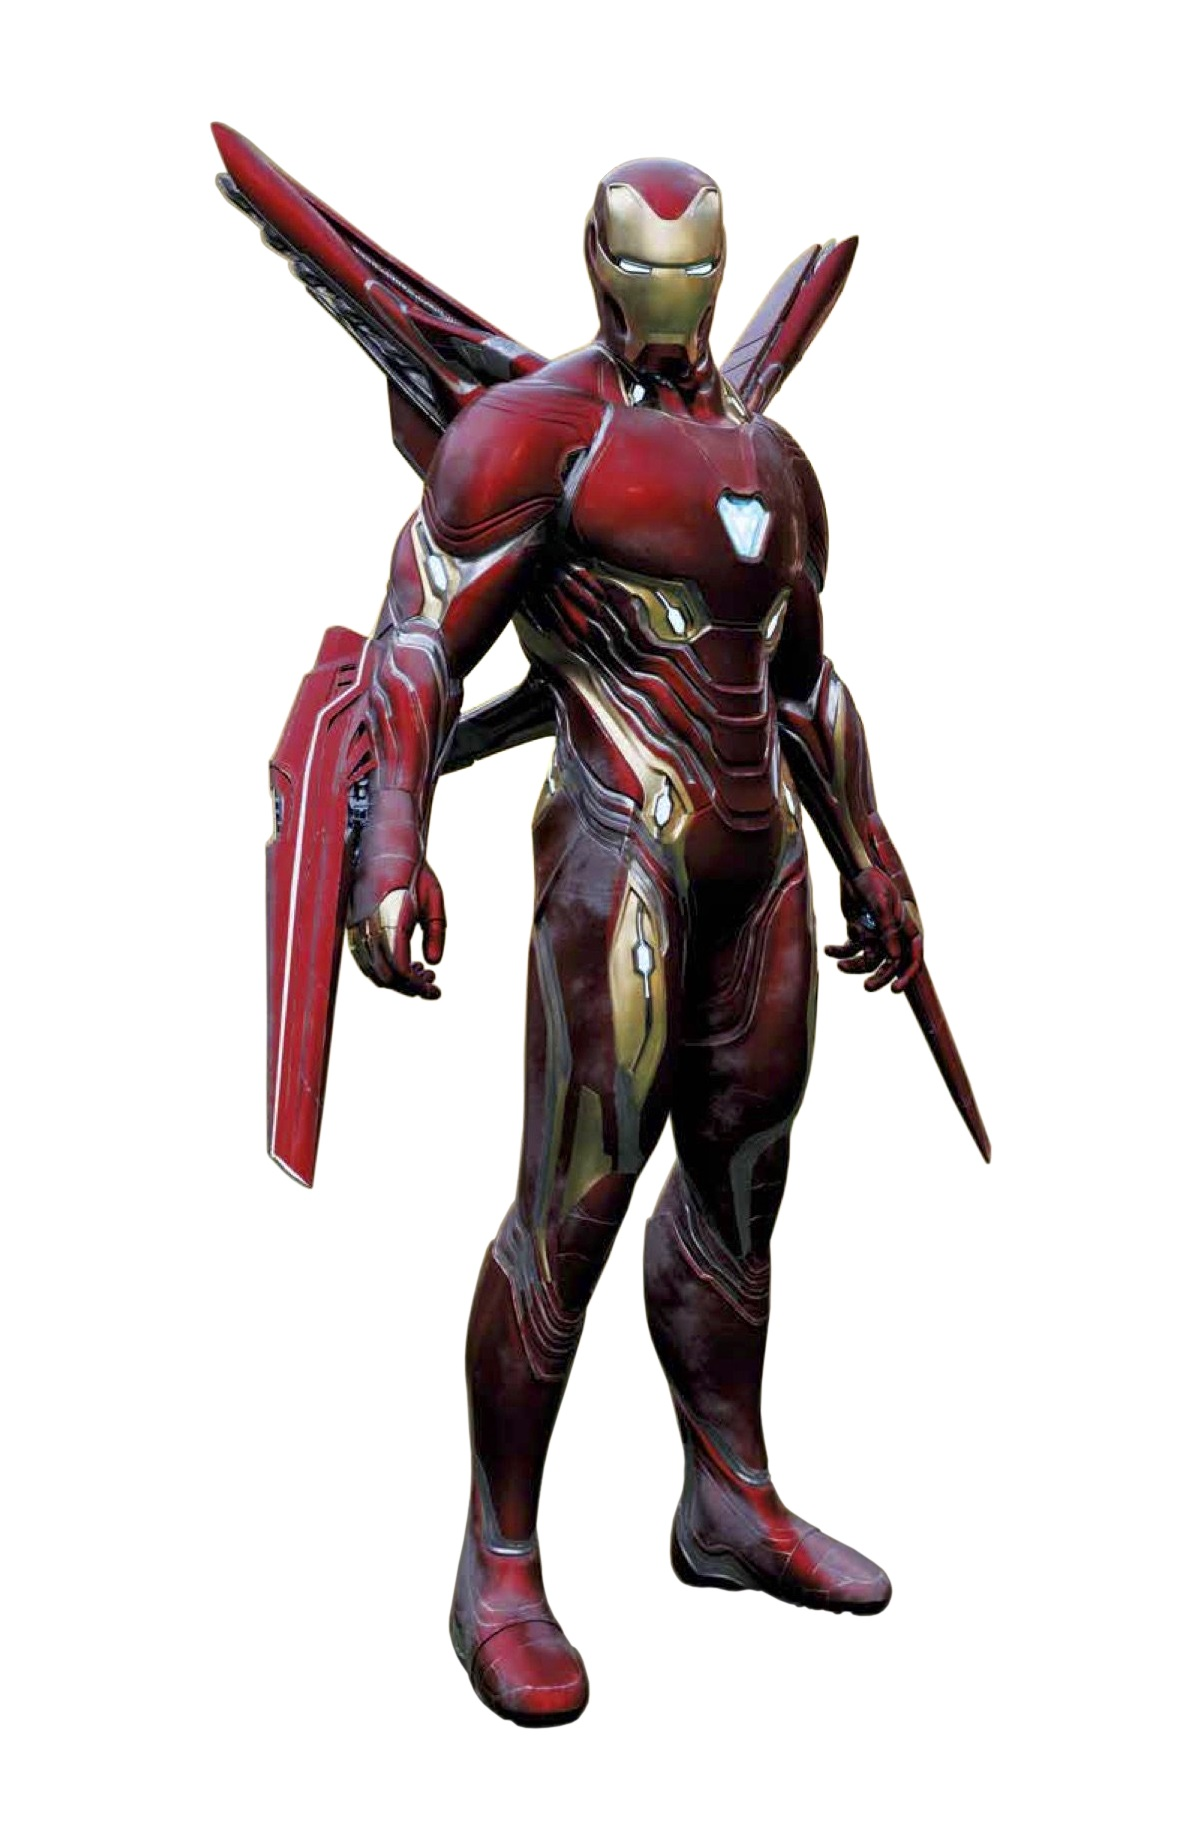 Iron Man Armor MK L (Earth-199999)